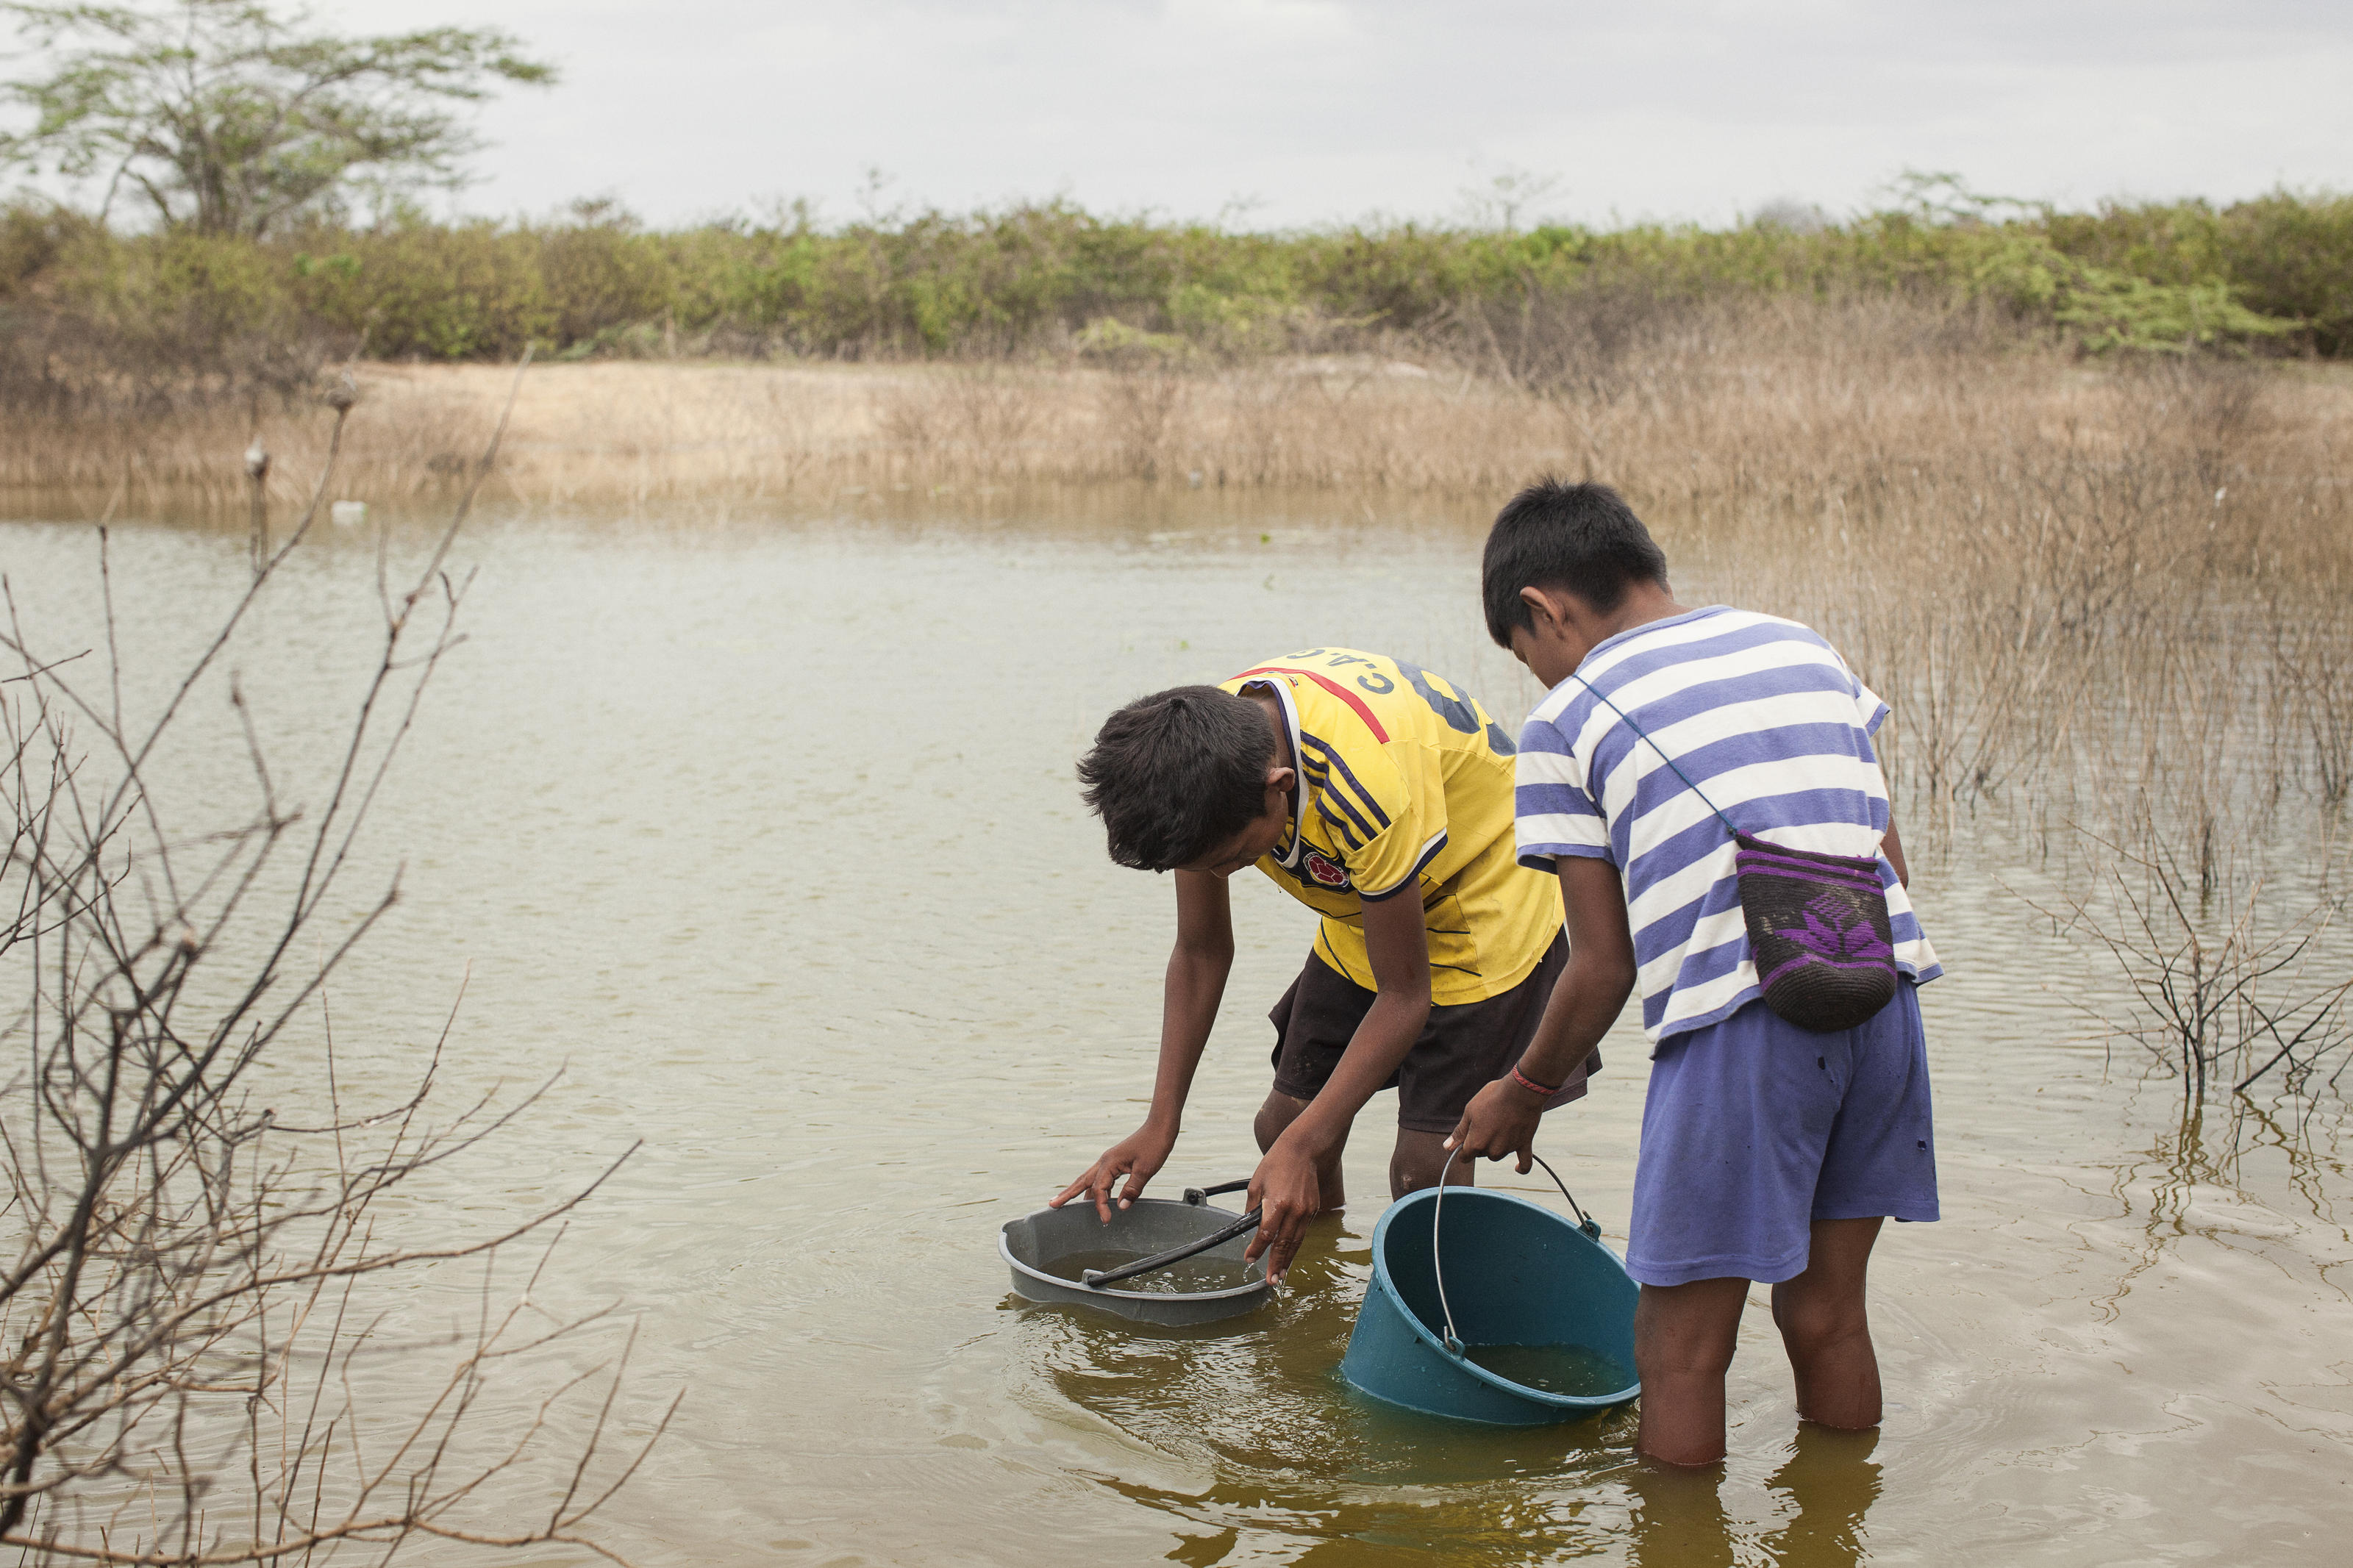 Hector Segundo Epiayu, 12, and Jose Miguel Aguilar, 11, get water from the jaguey for domestic use,  in Cachacha II, Riohacha, La Guajira, Colombia. March 2017.